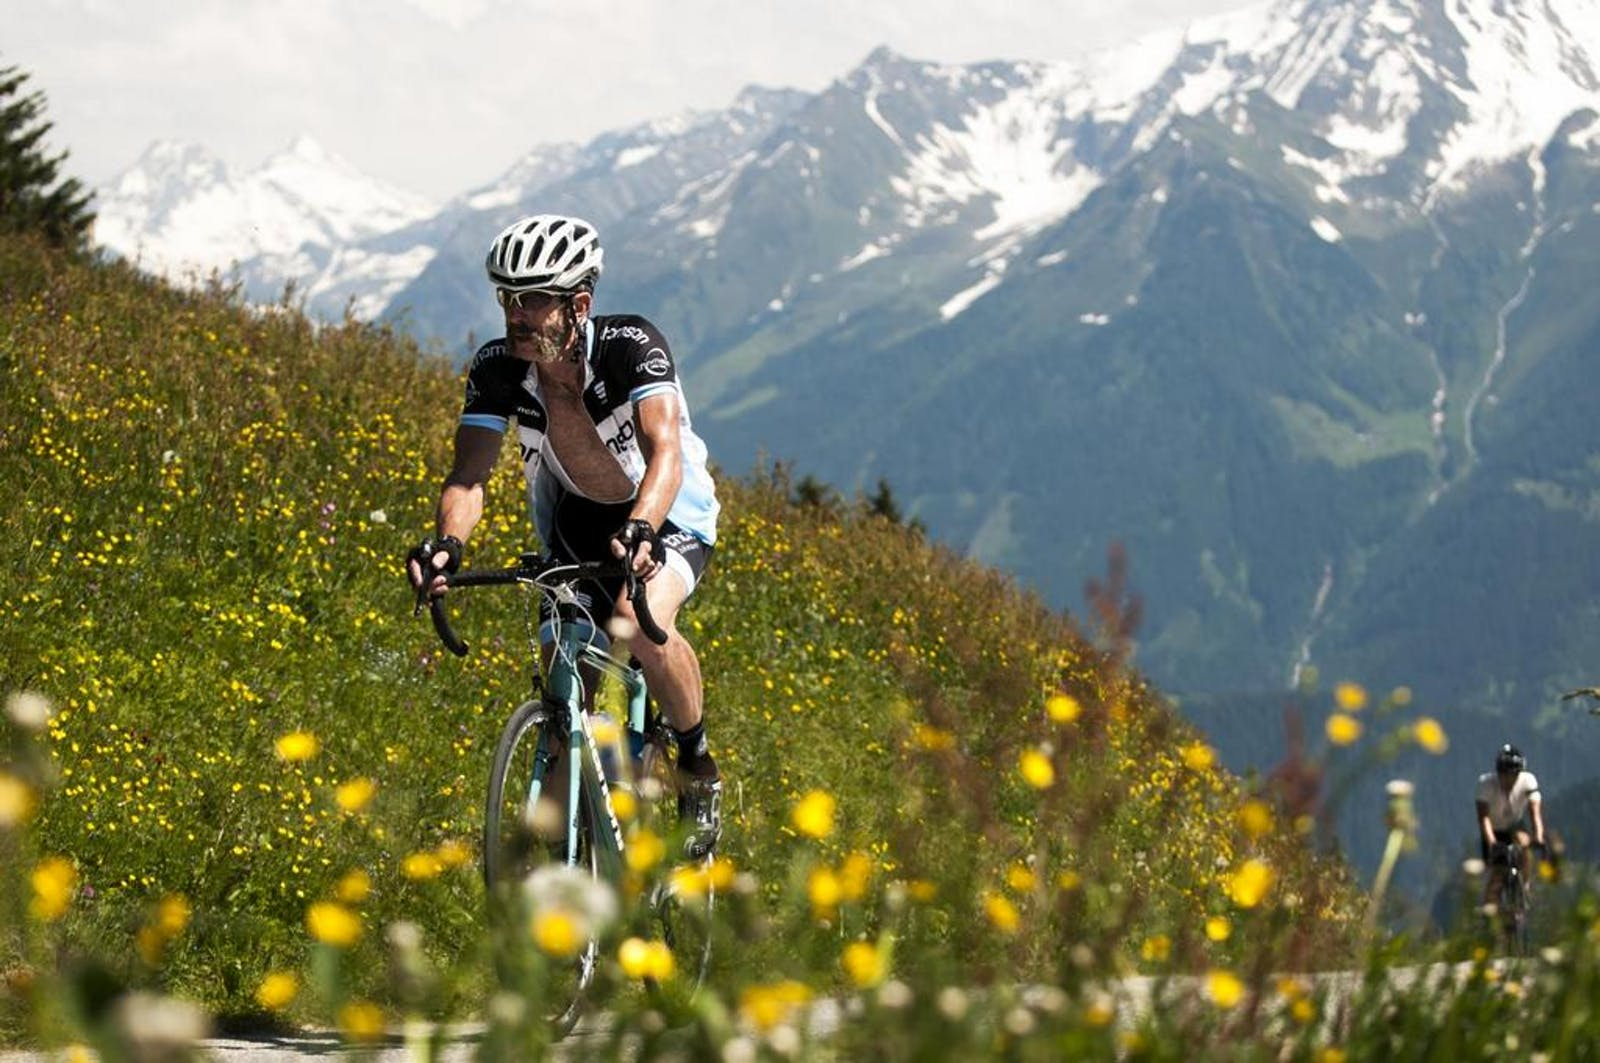 Private cycling trip opportunity: Wildflowers in the Austrian Alps